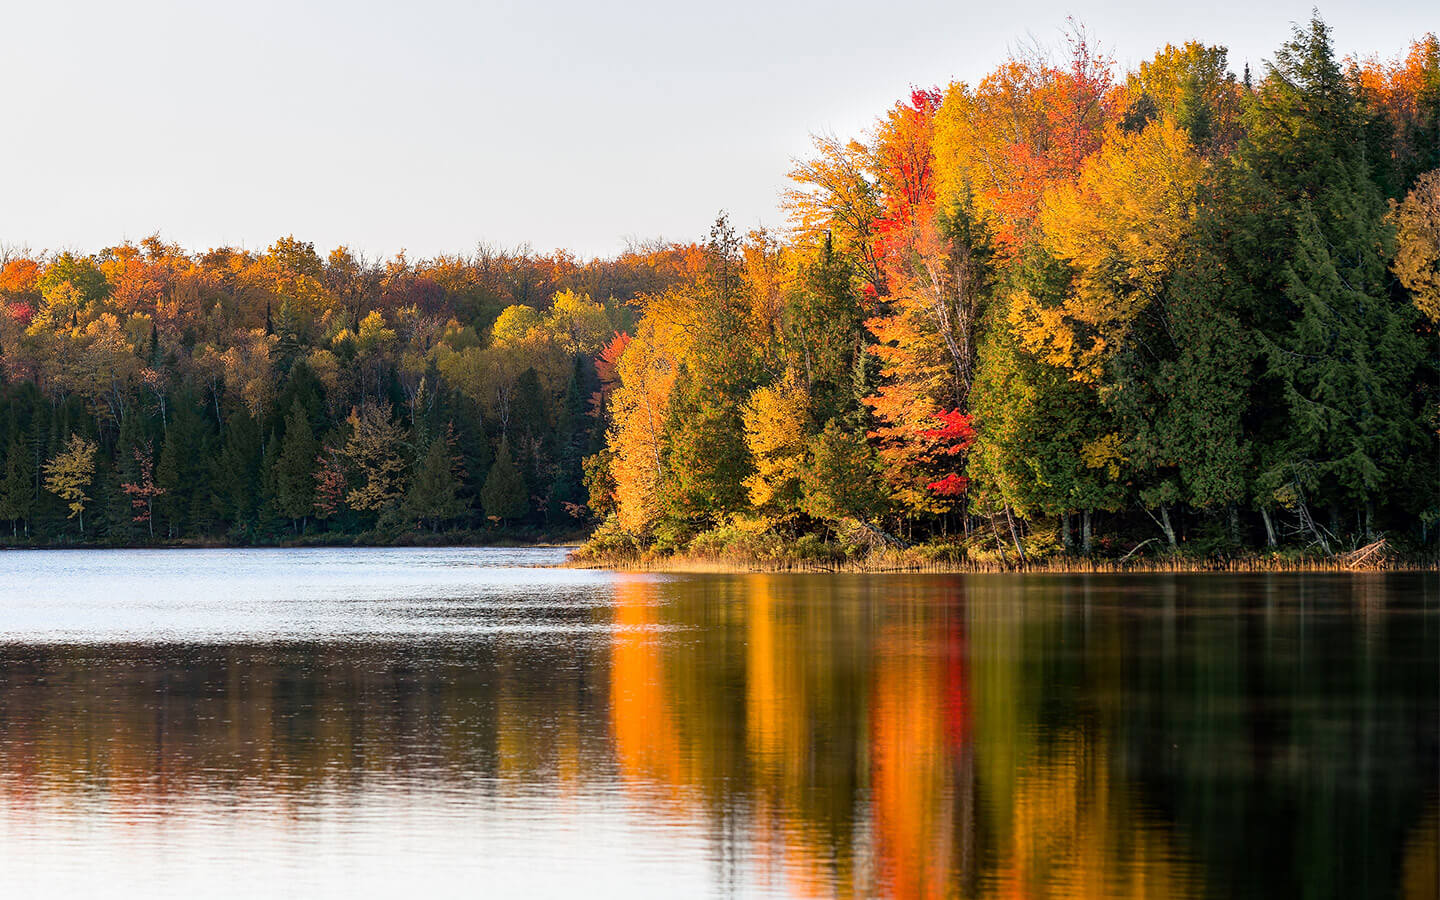 Beautiful fall colors on the lake at a fall weekend getaway